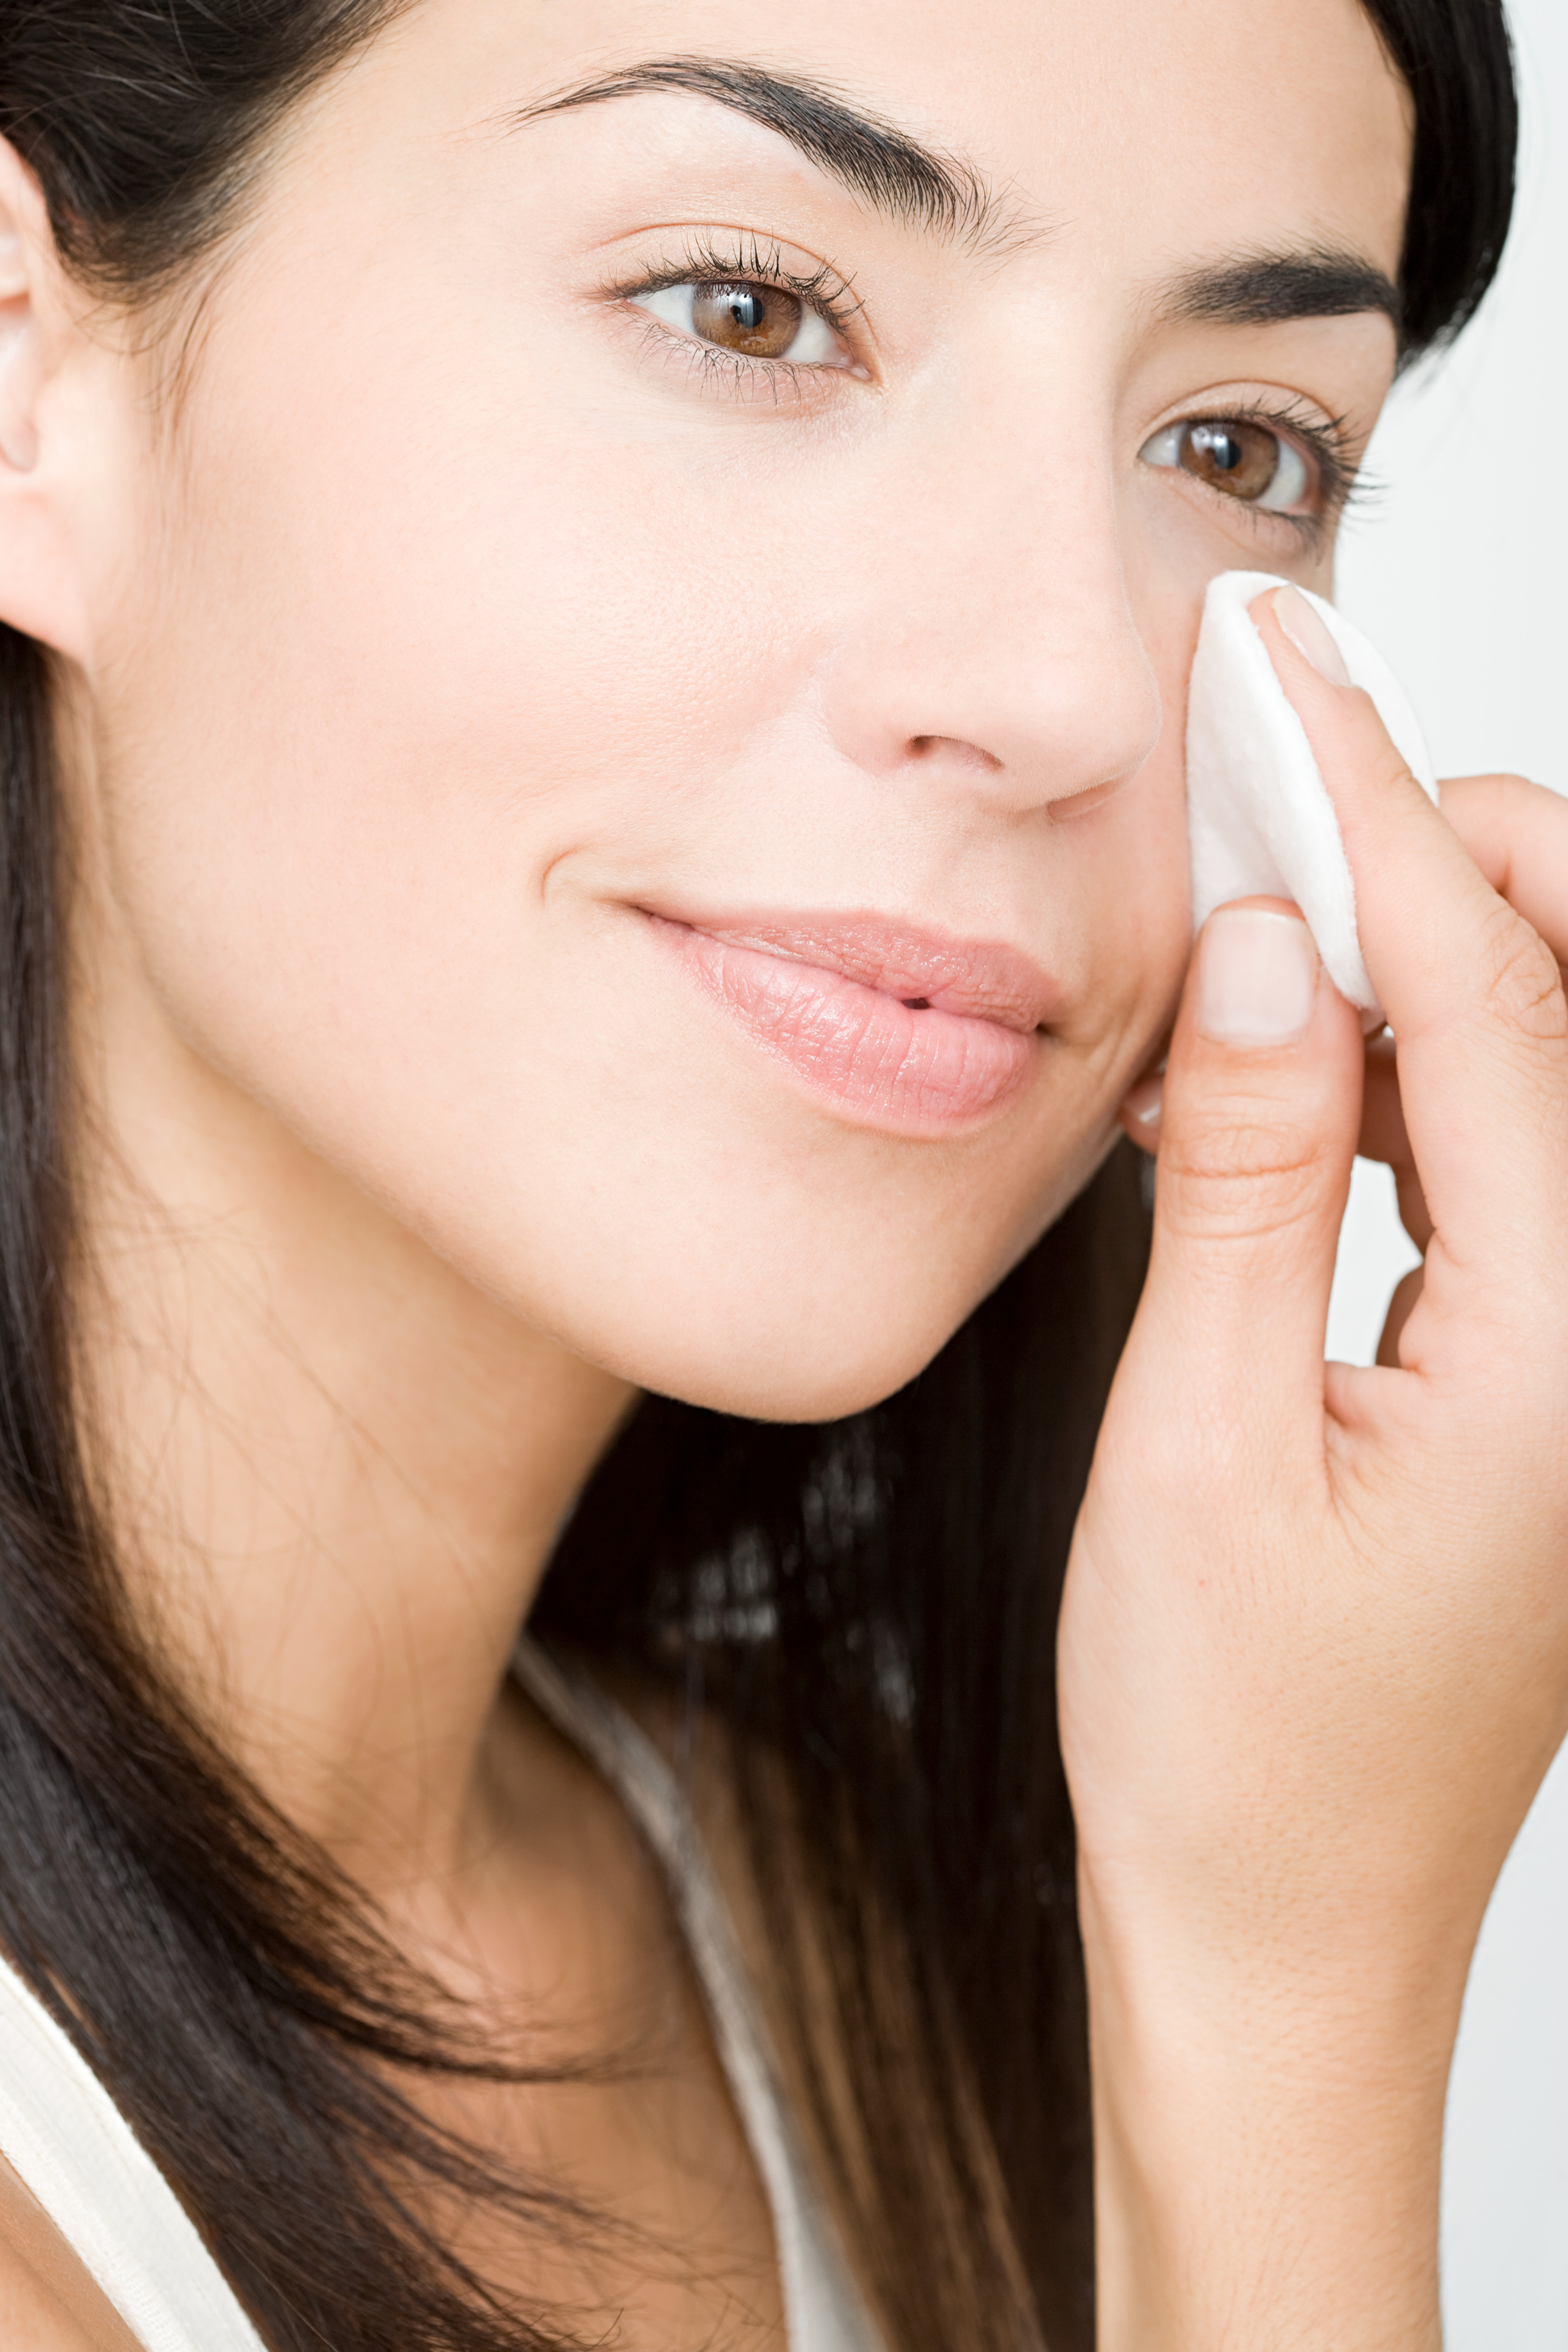 woman using makeup remover wipe